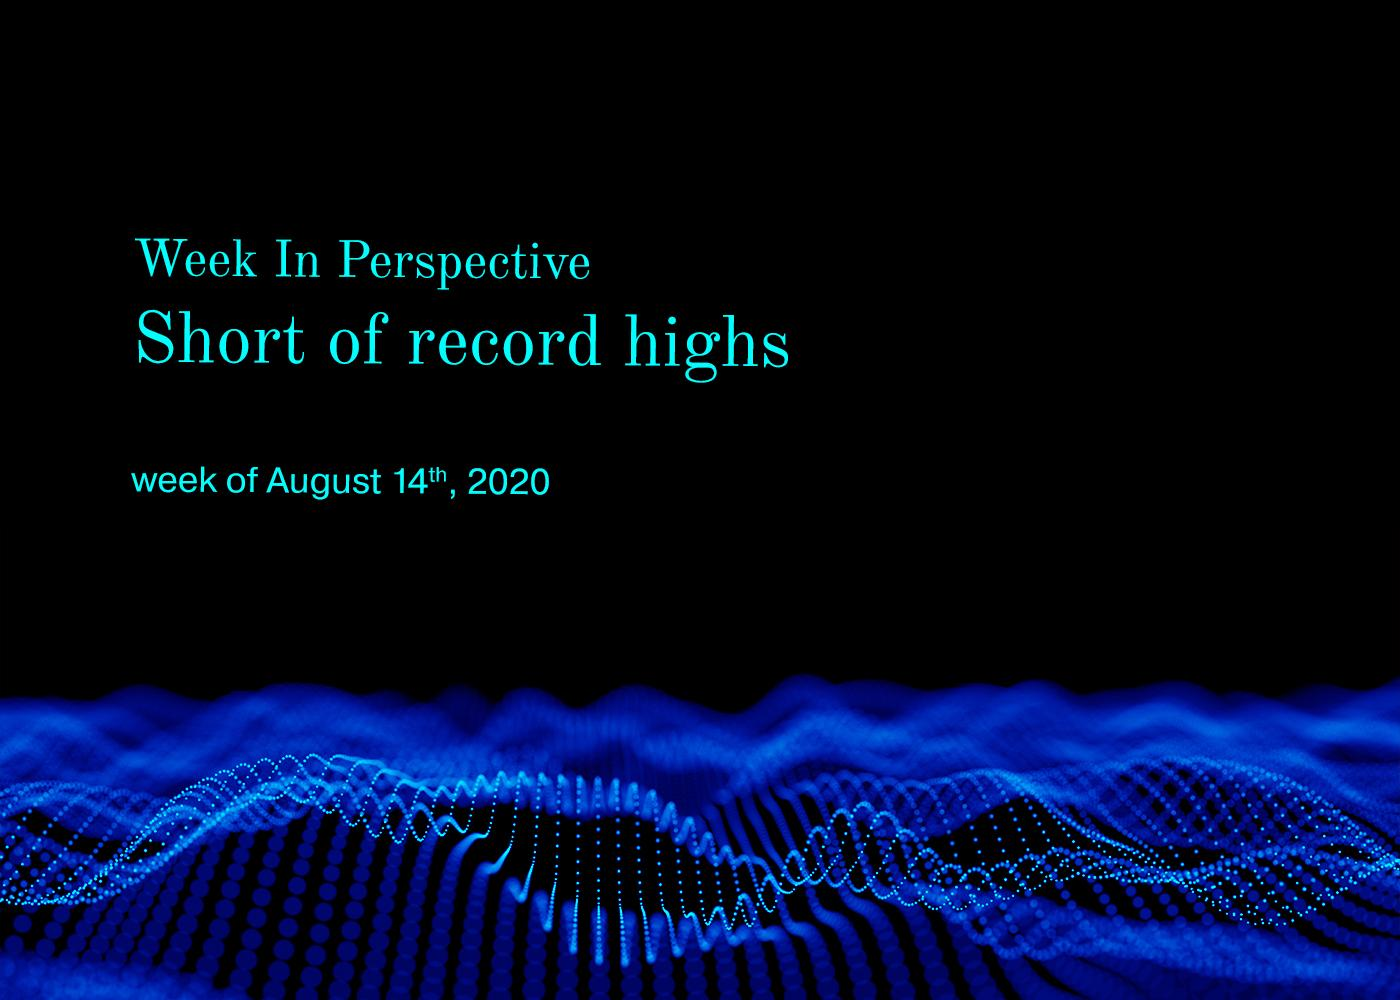 Week in Perspective August 14, 2020: Short of Record Highs Thumbnail